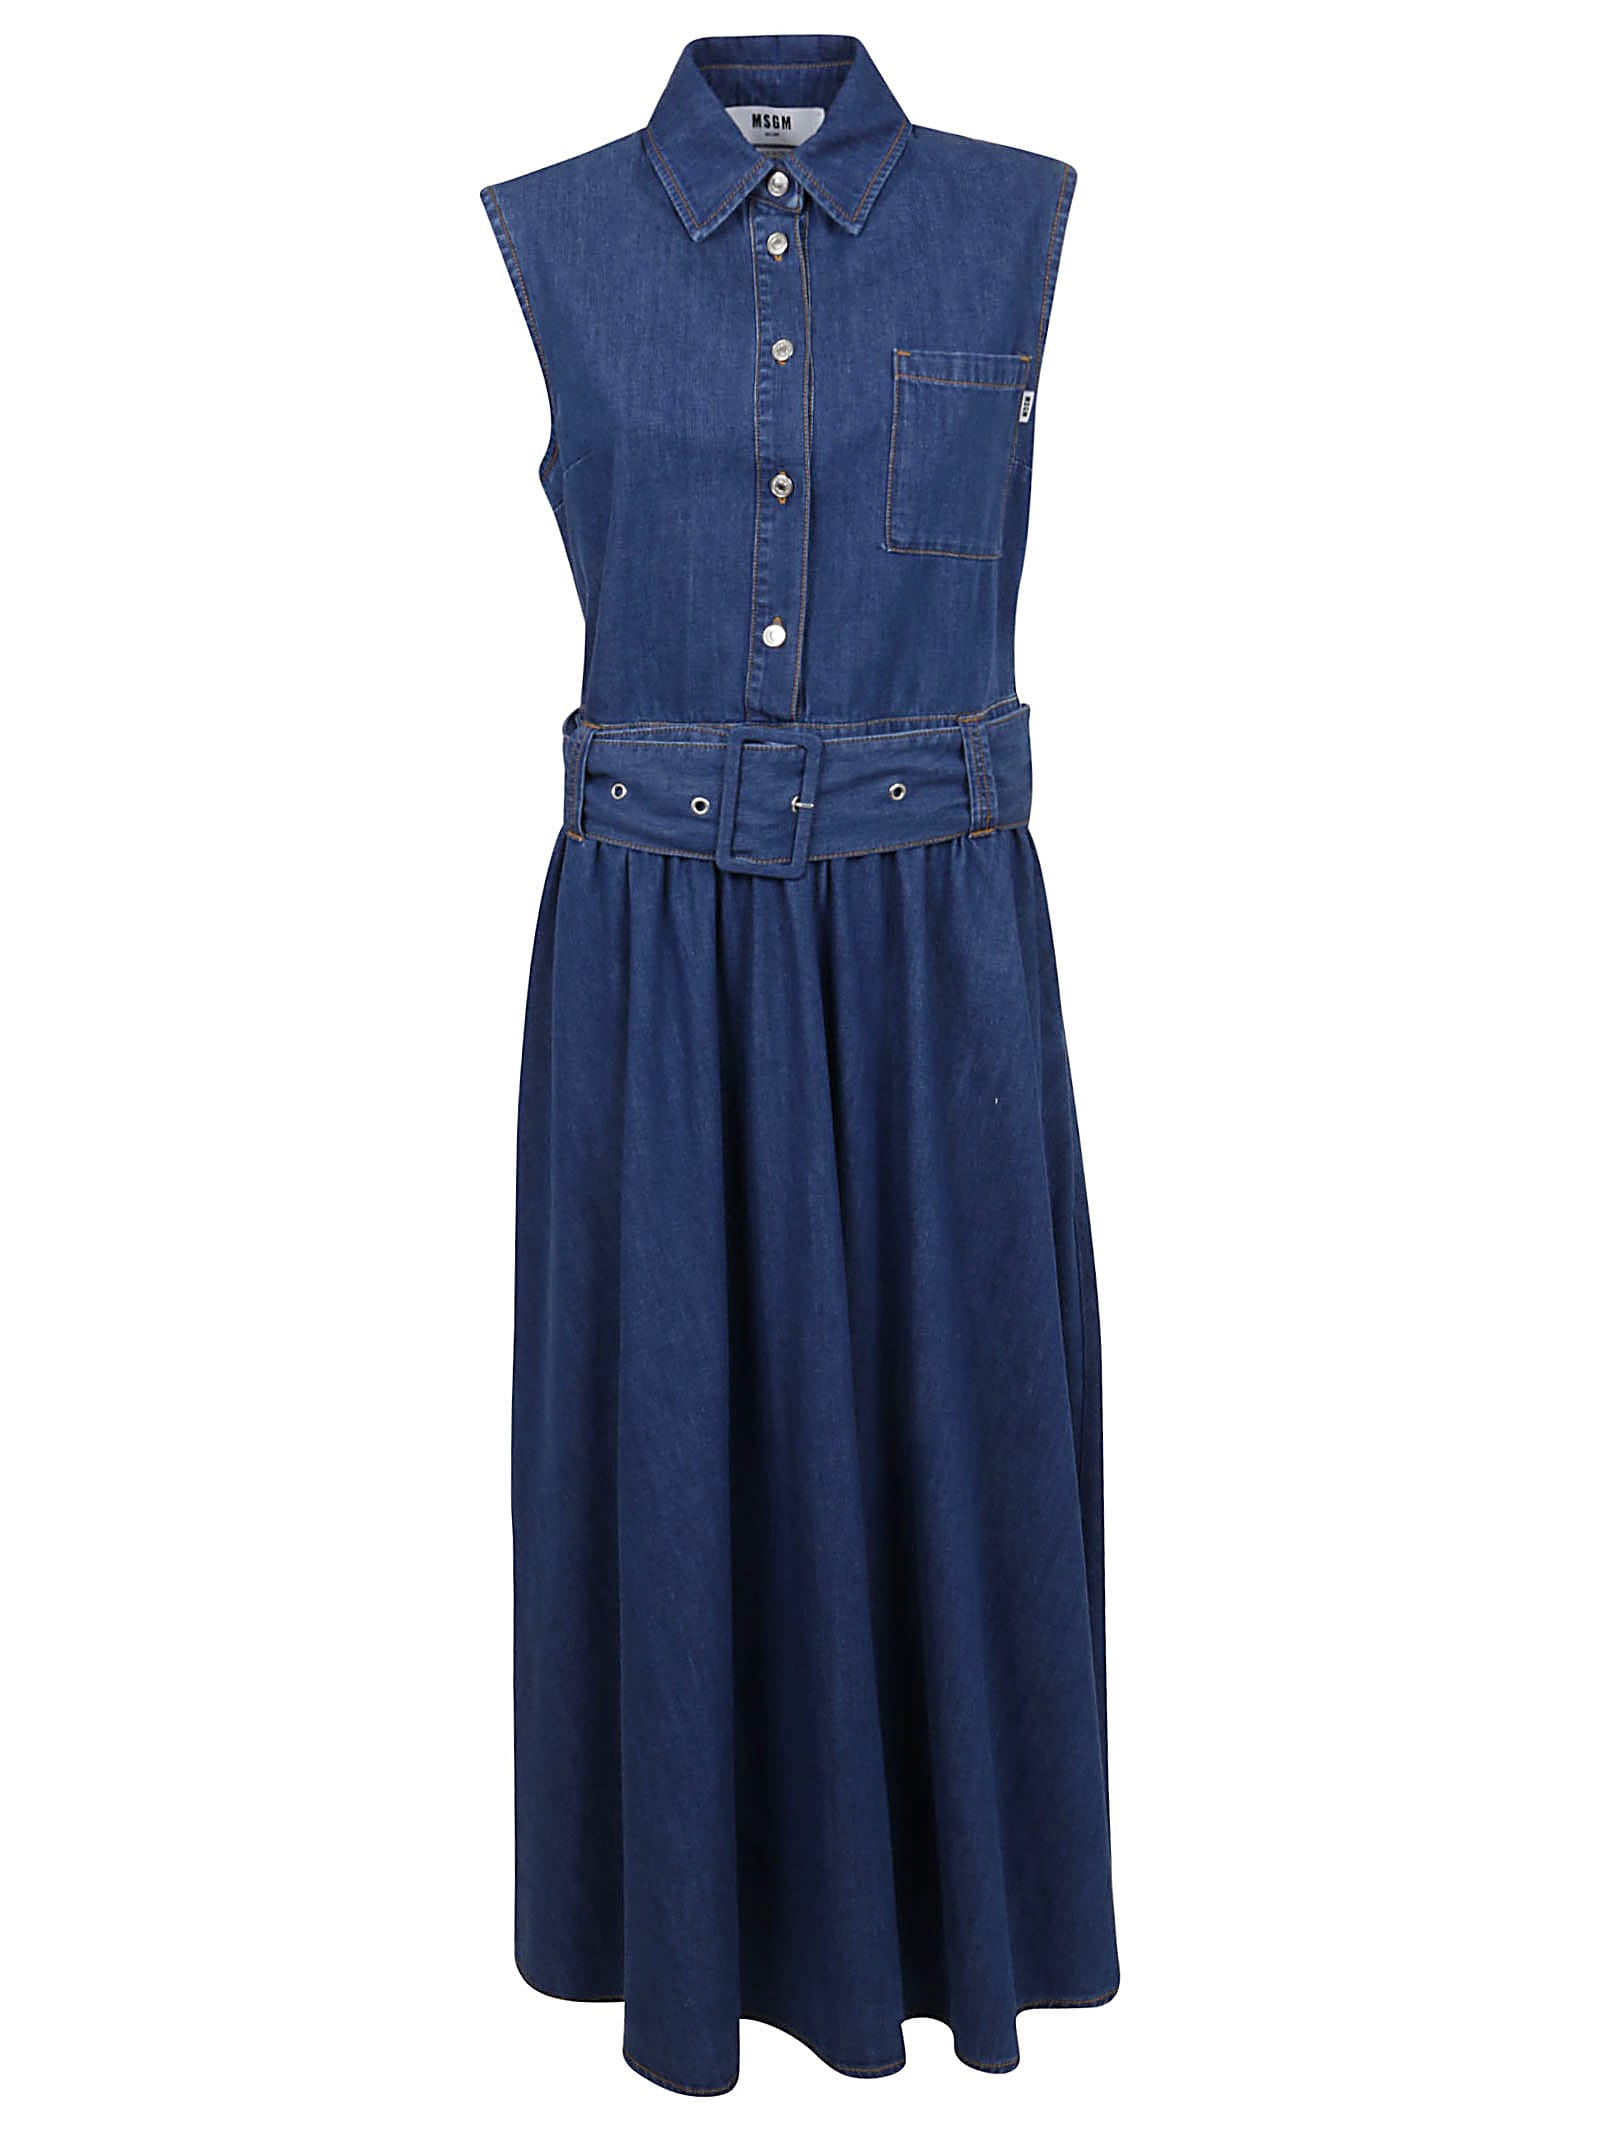 Buy MSGM Abito In Denim/denim Dress online, shop MSGM with free shipping